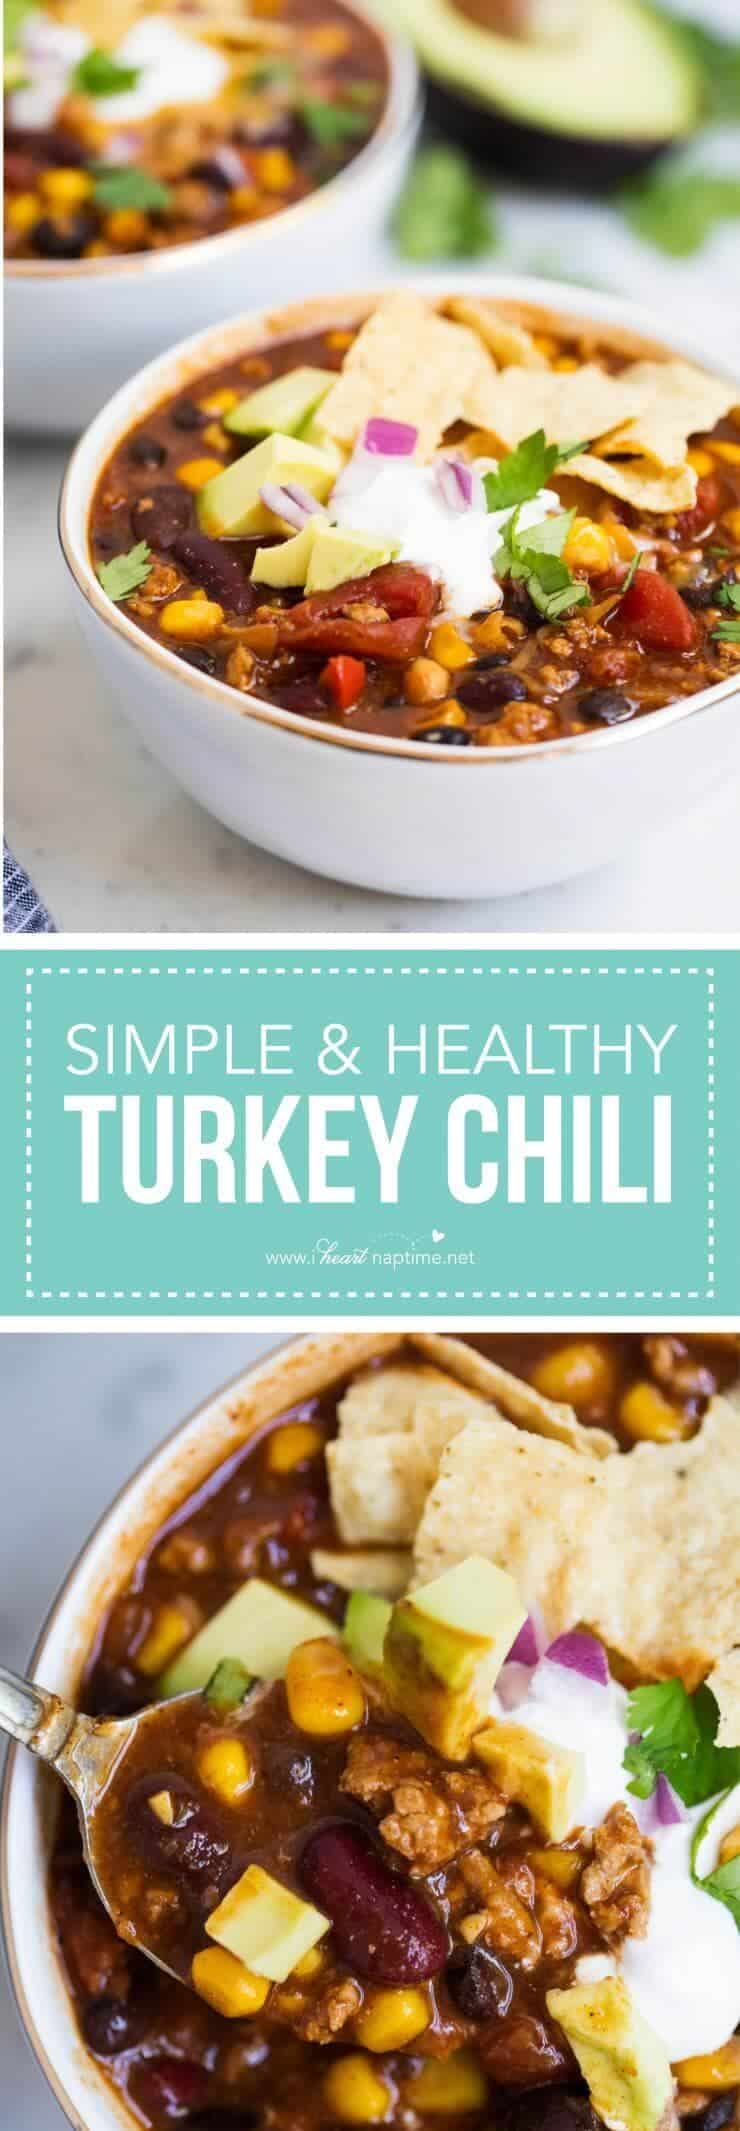 Healthy turkey chili -this easy recipe is hearty and delicious with plenty of flavor! Can easily be made in the slow cooker as well.